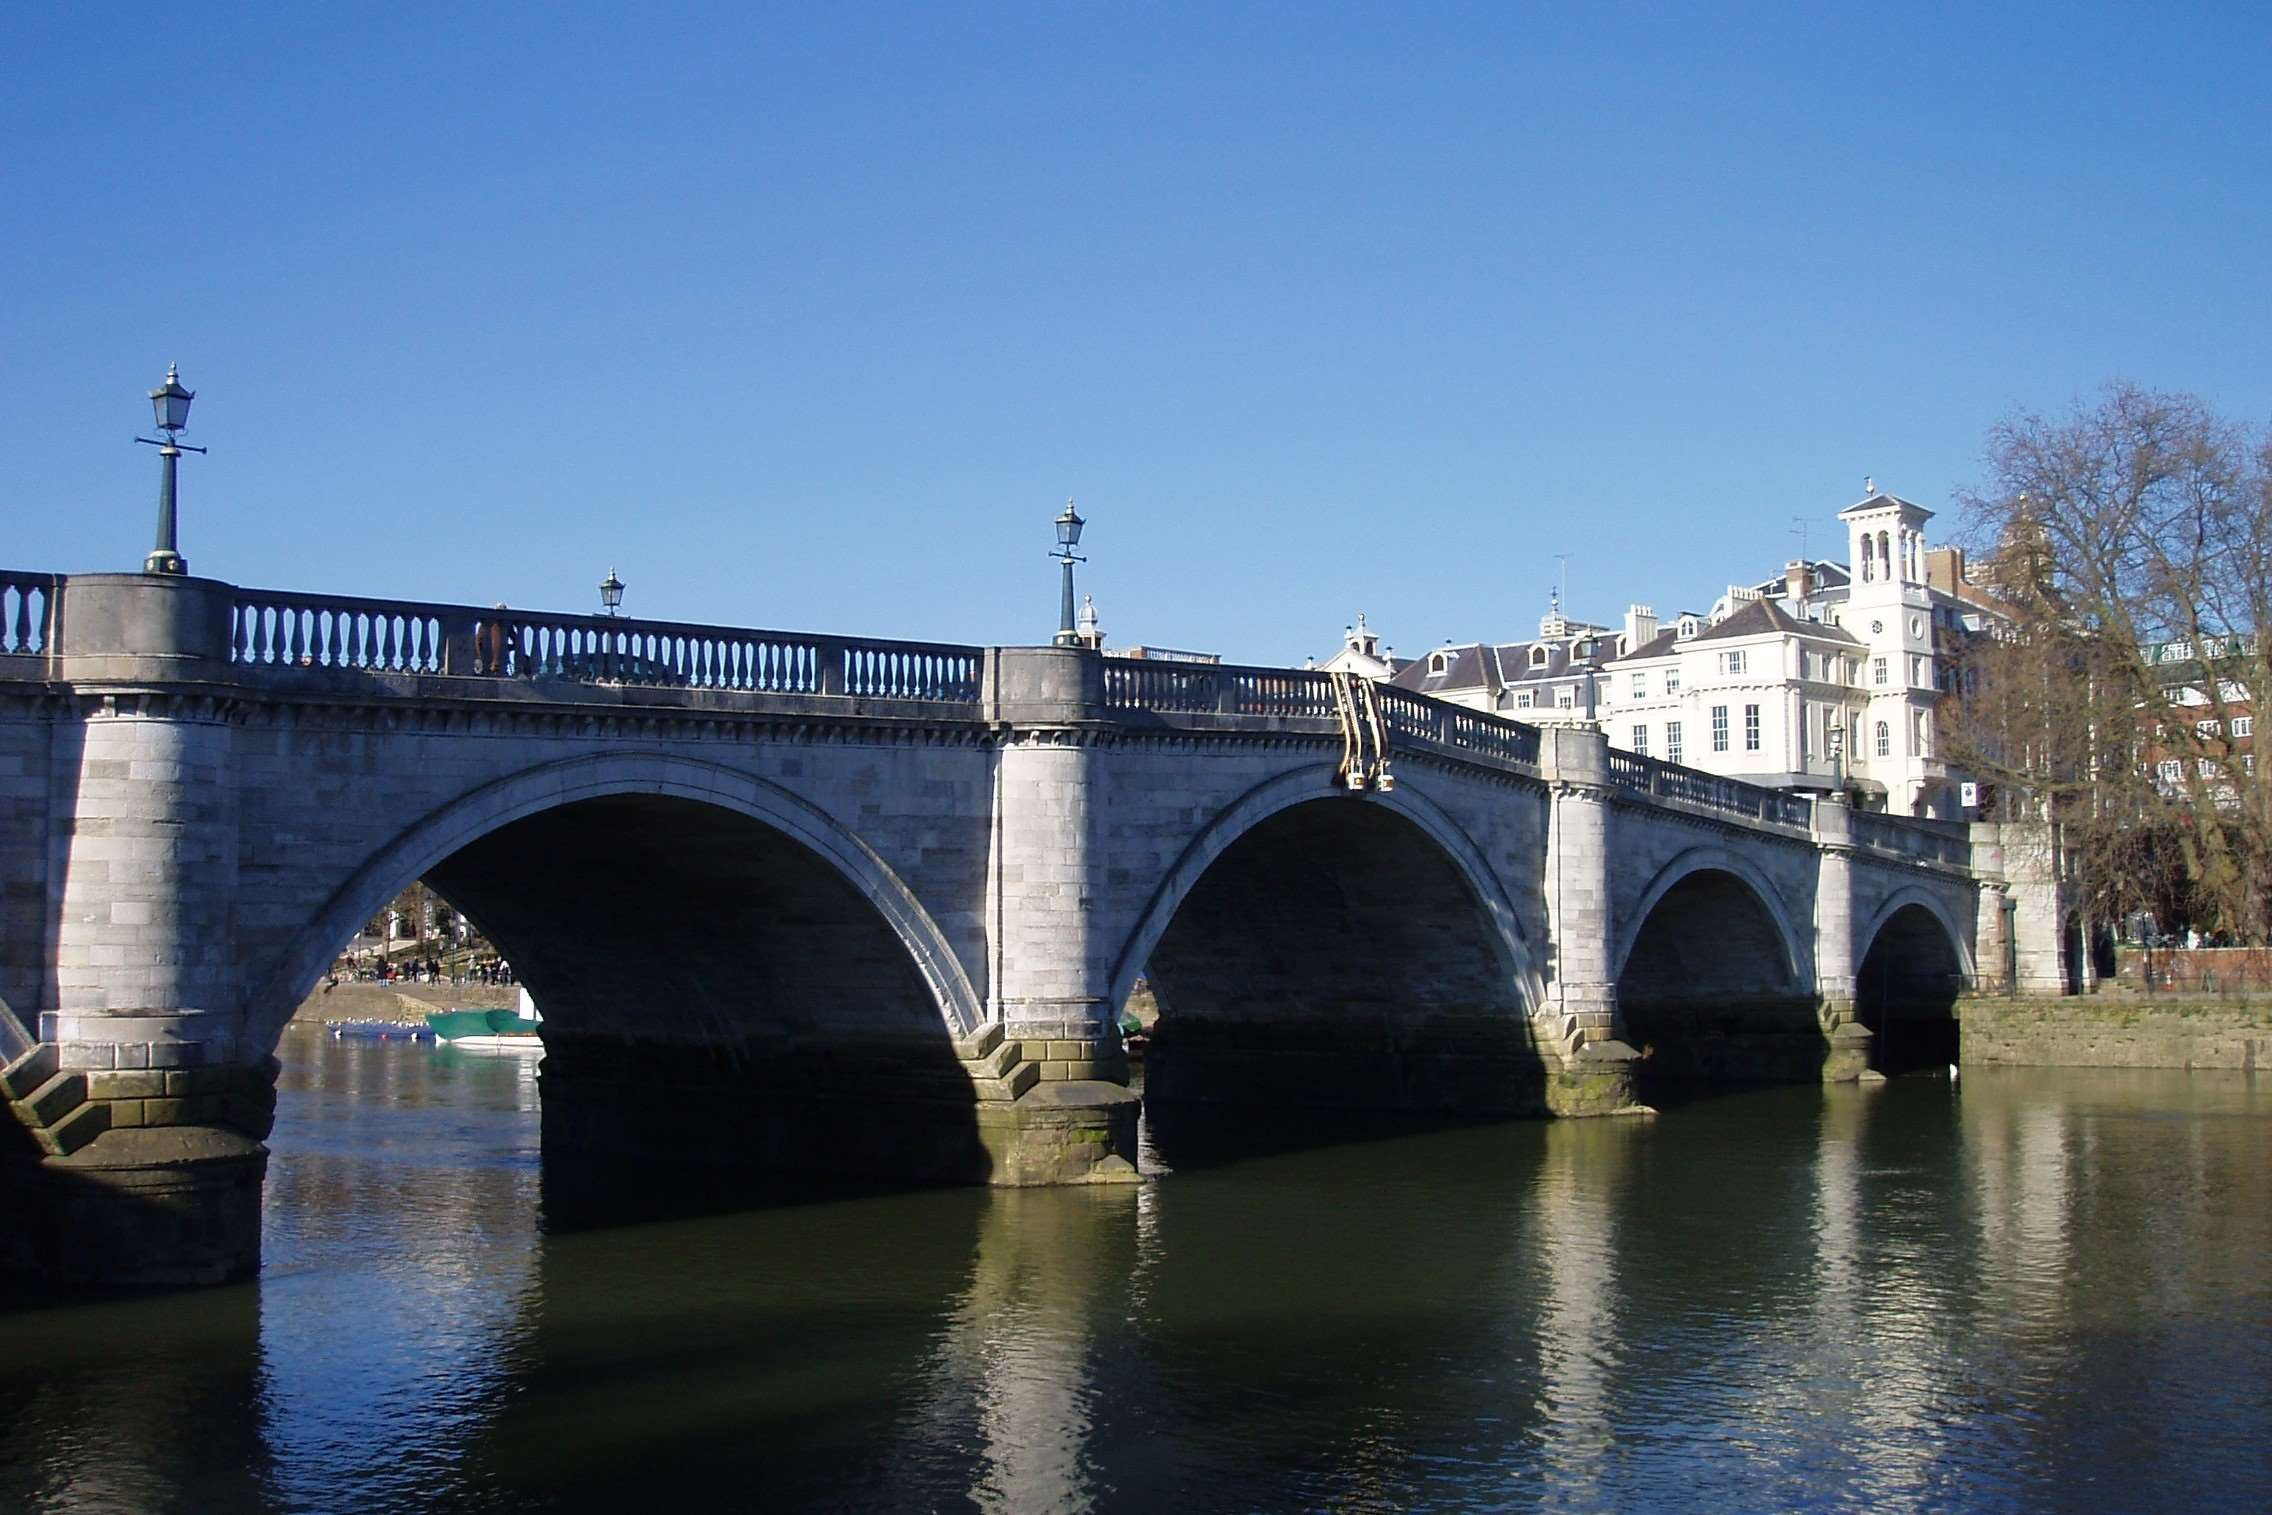 richmond_bridge,_london_(march_2010)